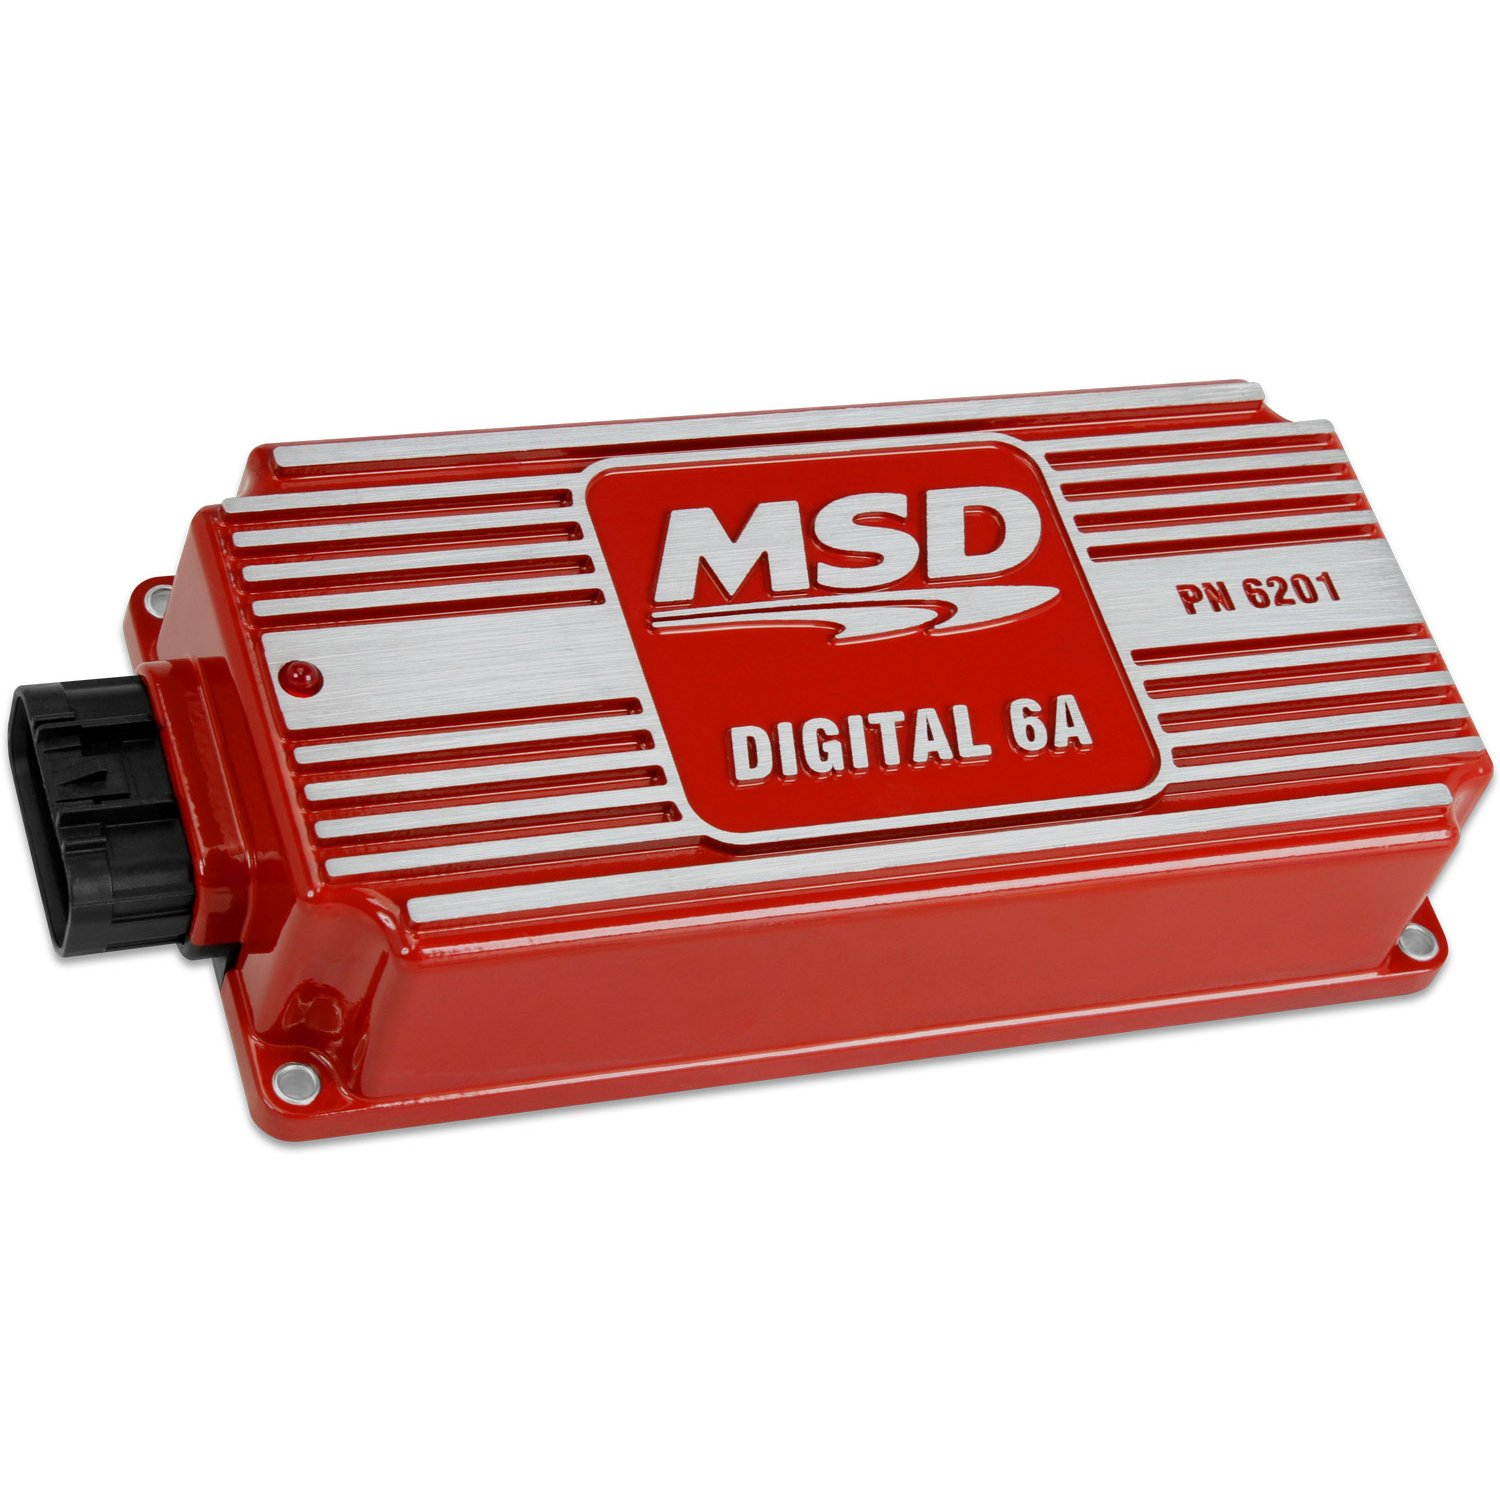 msd 6201 digital 6a ignition control msd performance products 6201 digital 6a ignition control image